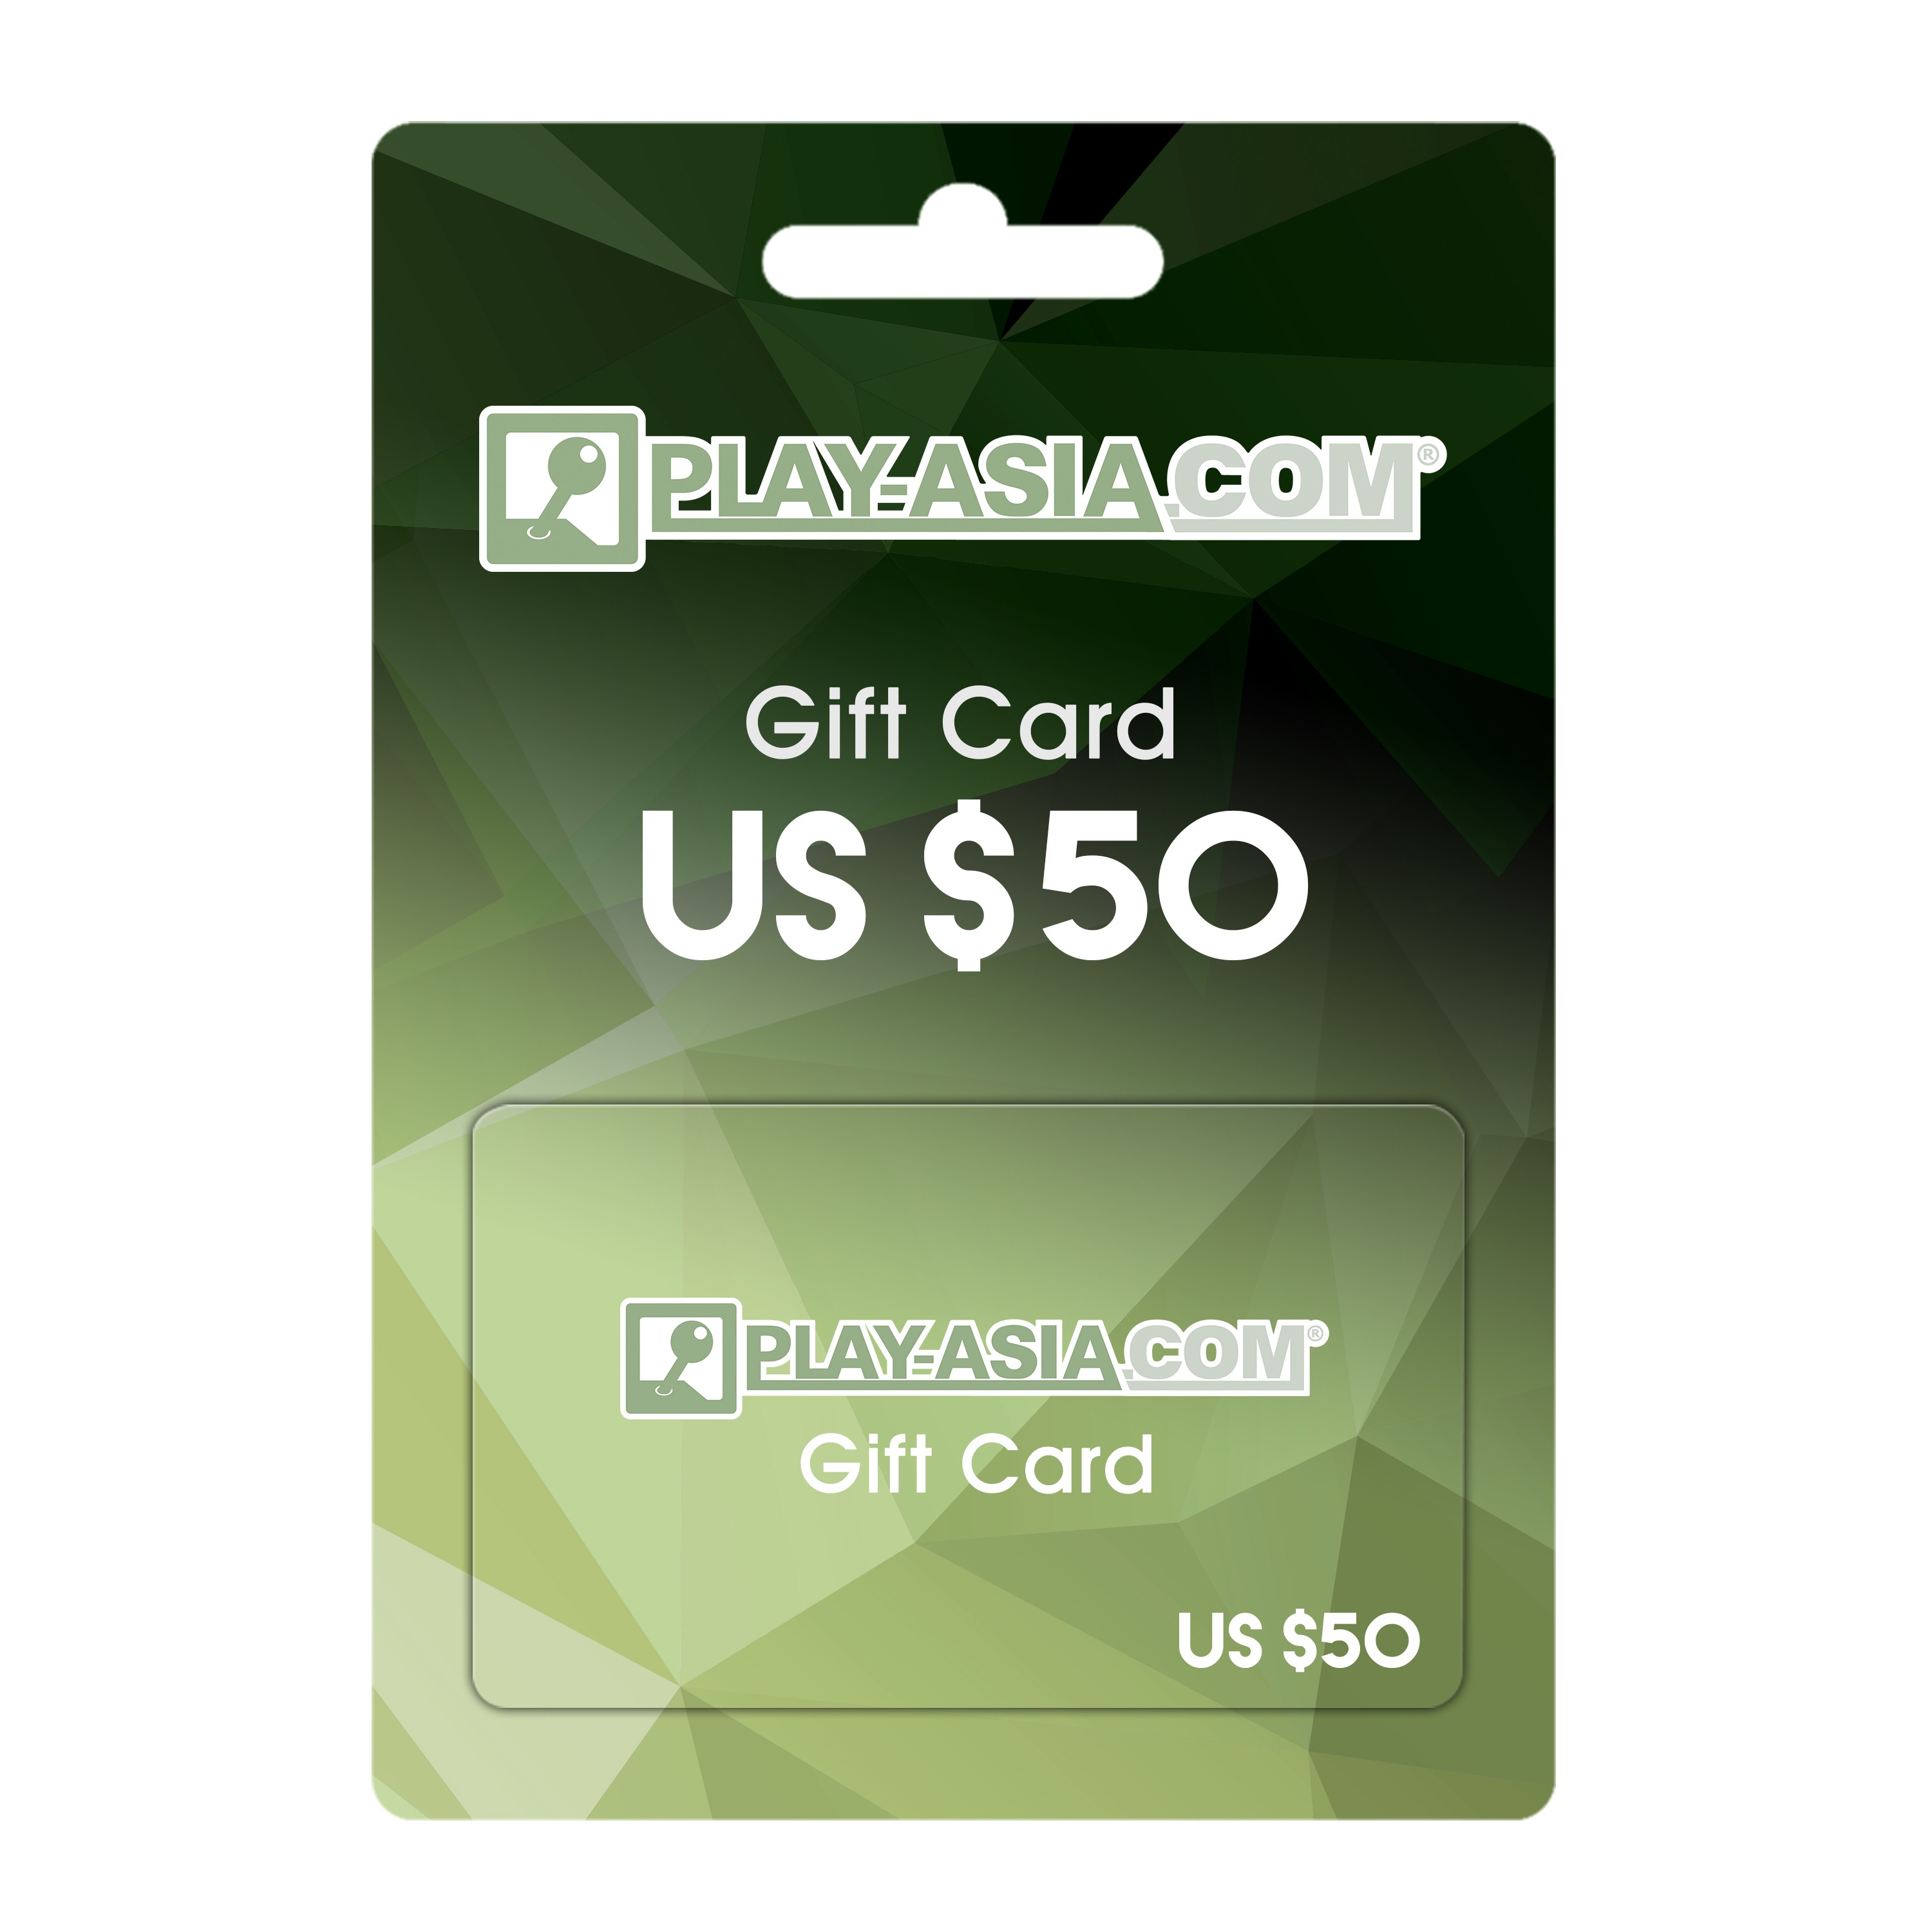 Play-Asia.com Gift Card